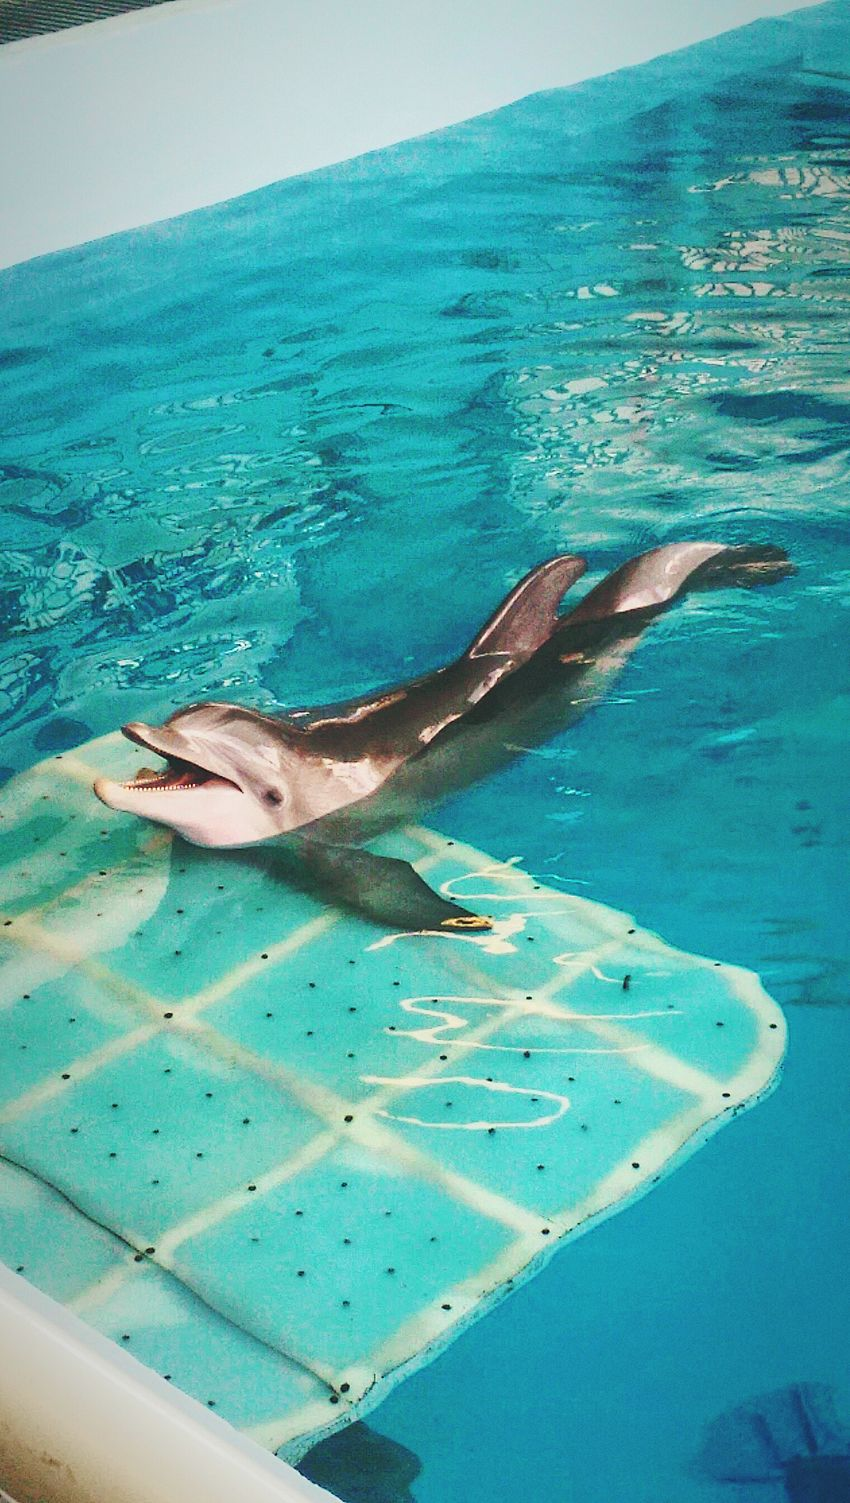 Water Animals In The Wild Sea Life Dolphin Dolphins Dolphindiscovery Dolphin Show  Dolphin Fun Dolphin In Water Dolphin Show  Dolphin Watching  Dolphin